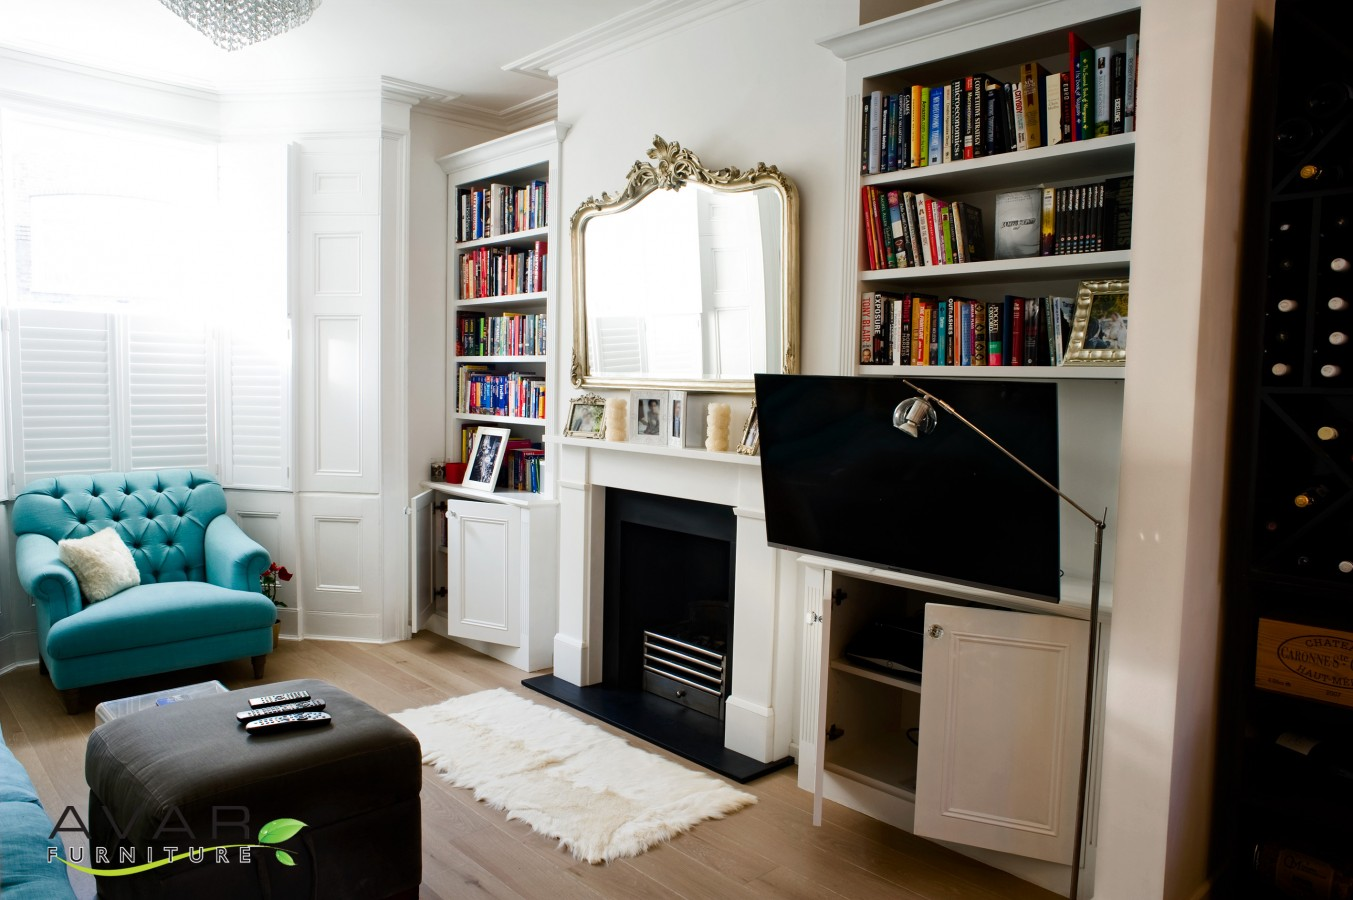 furniture ideas for living room alcoves choosing paint colors ƹӝʒ alcove units gallery 13 north london uk avar space